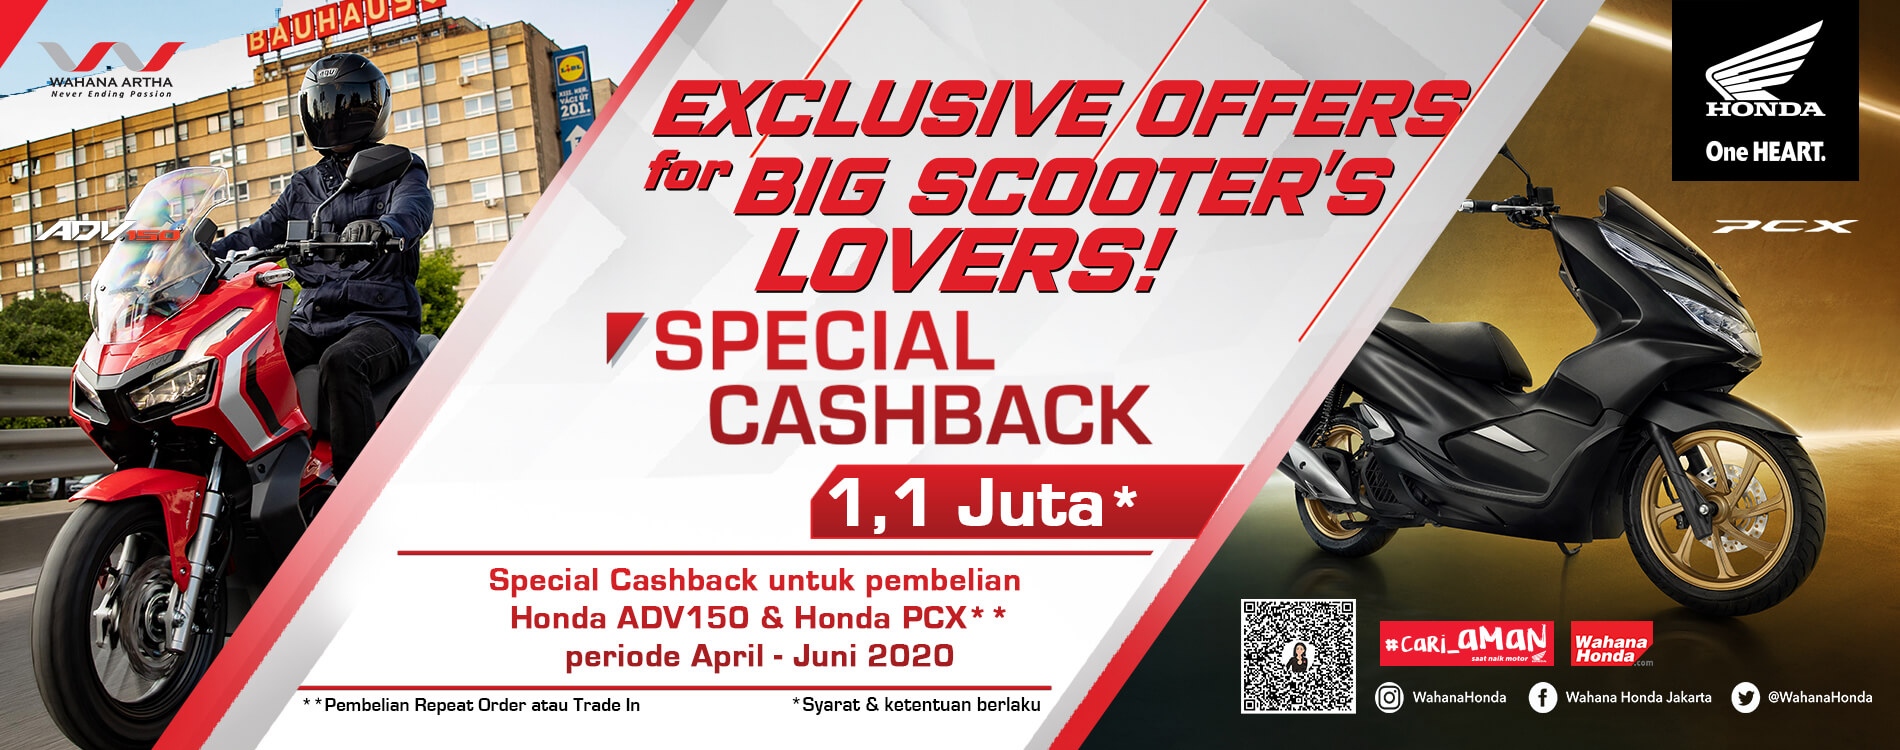 Exclusive Offers For Big Scooter's Lovers - Special Cashback 1,1 Million Periode April - Juni 2020